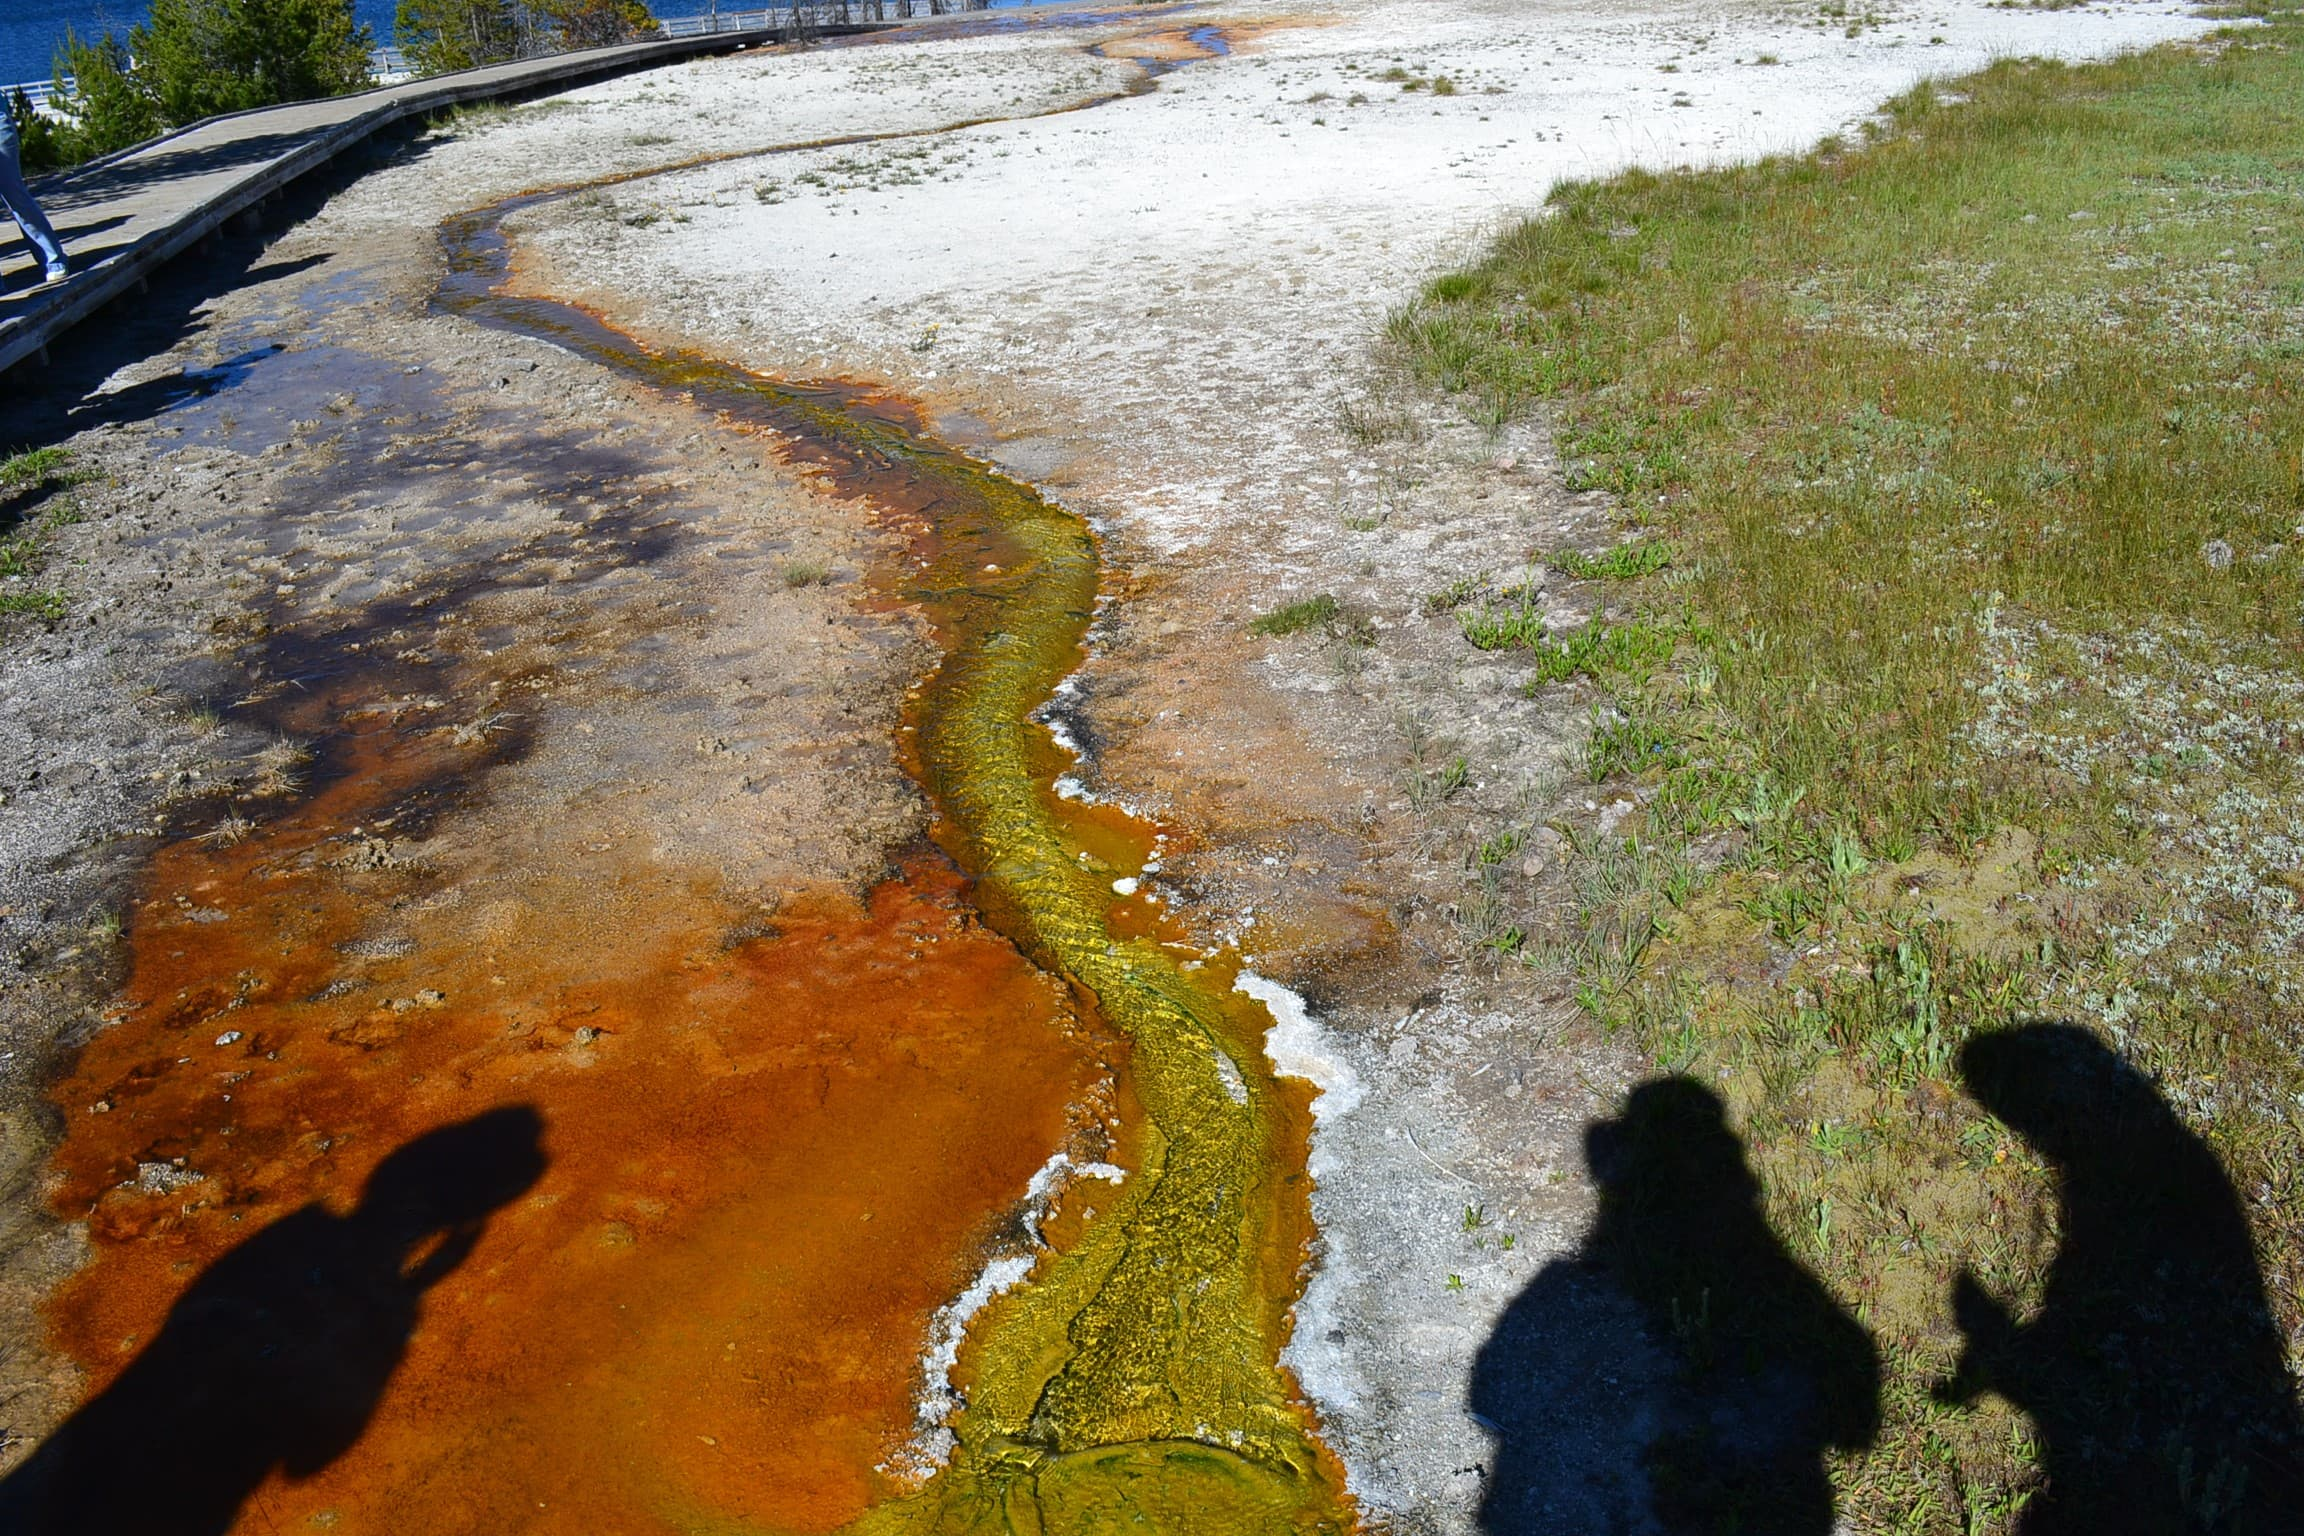 Colorful runoff from a hot spring.